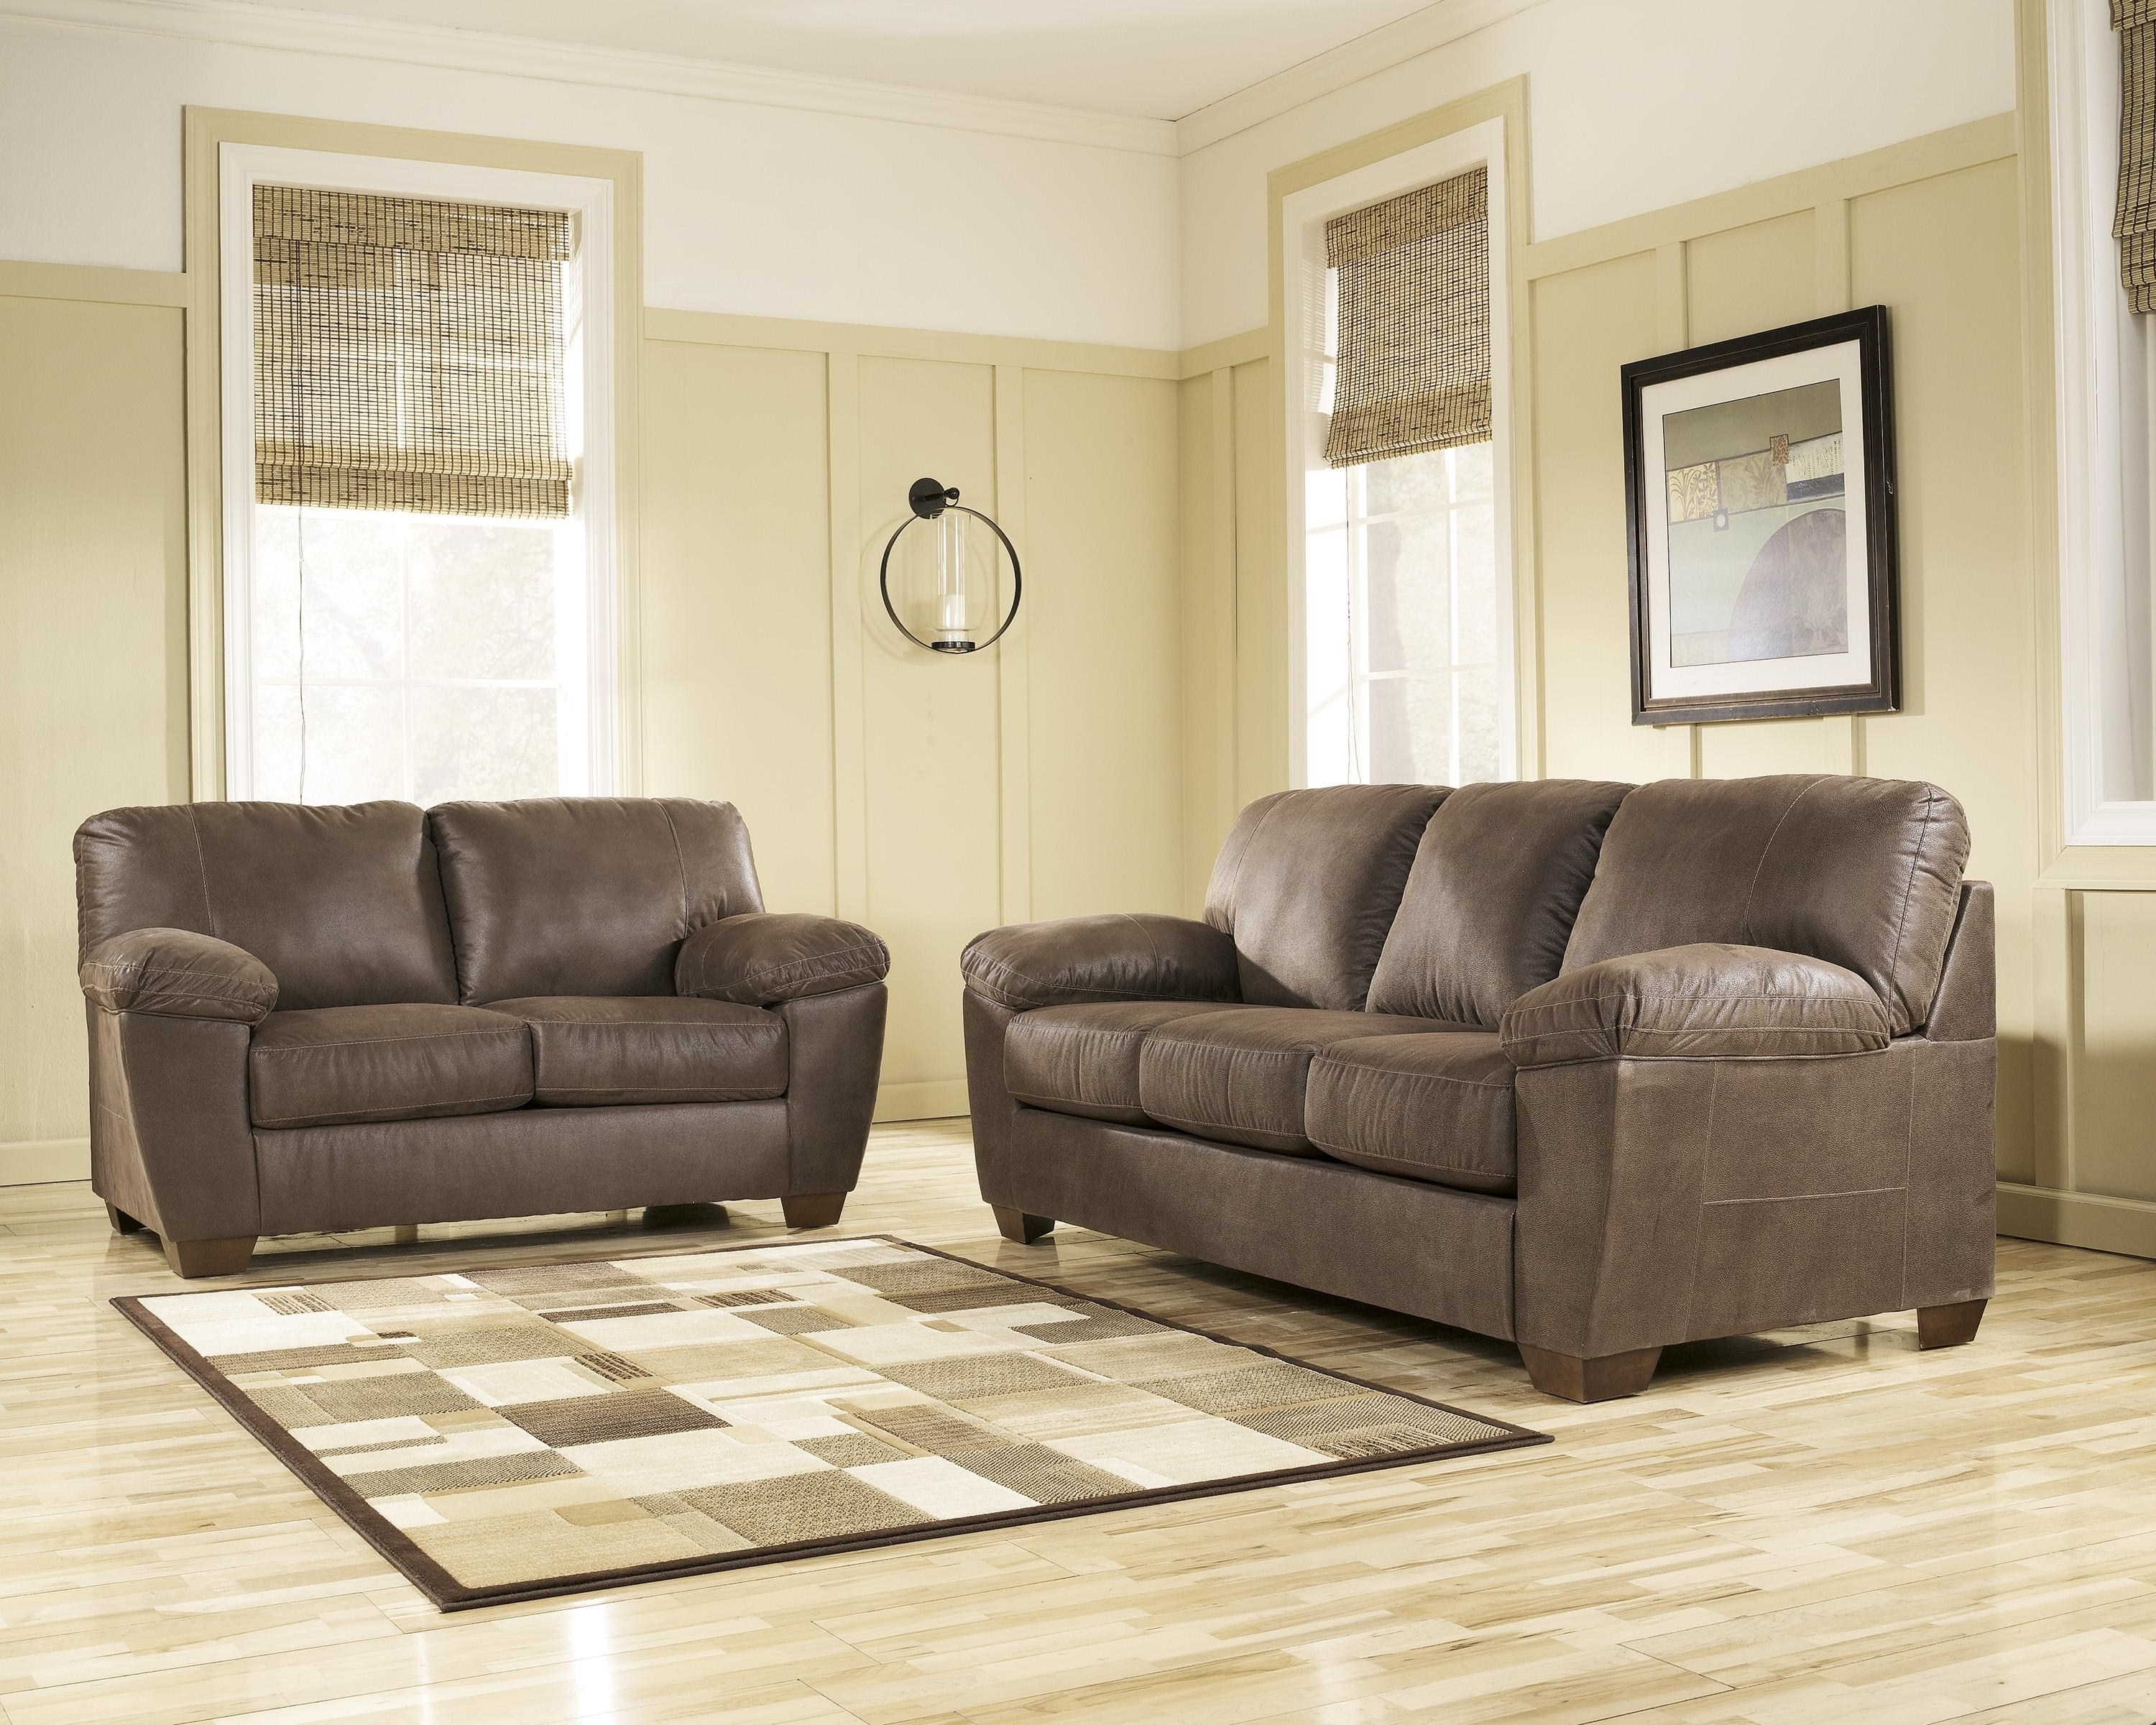 Jordans Sectional Sofas In Well Known Rotmans Furniture Worcester Ma Jordans Sectional Sofas Jordan's (Gallery 1 of 20)